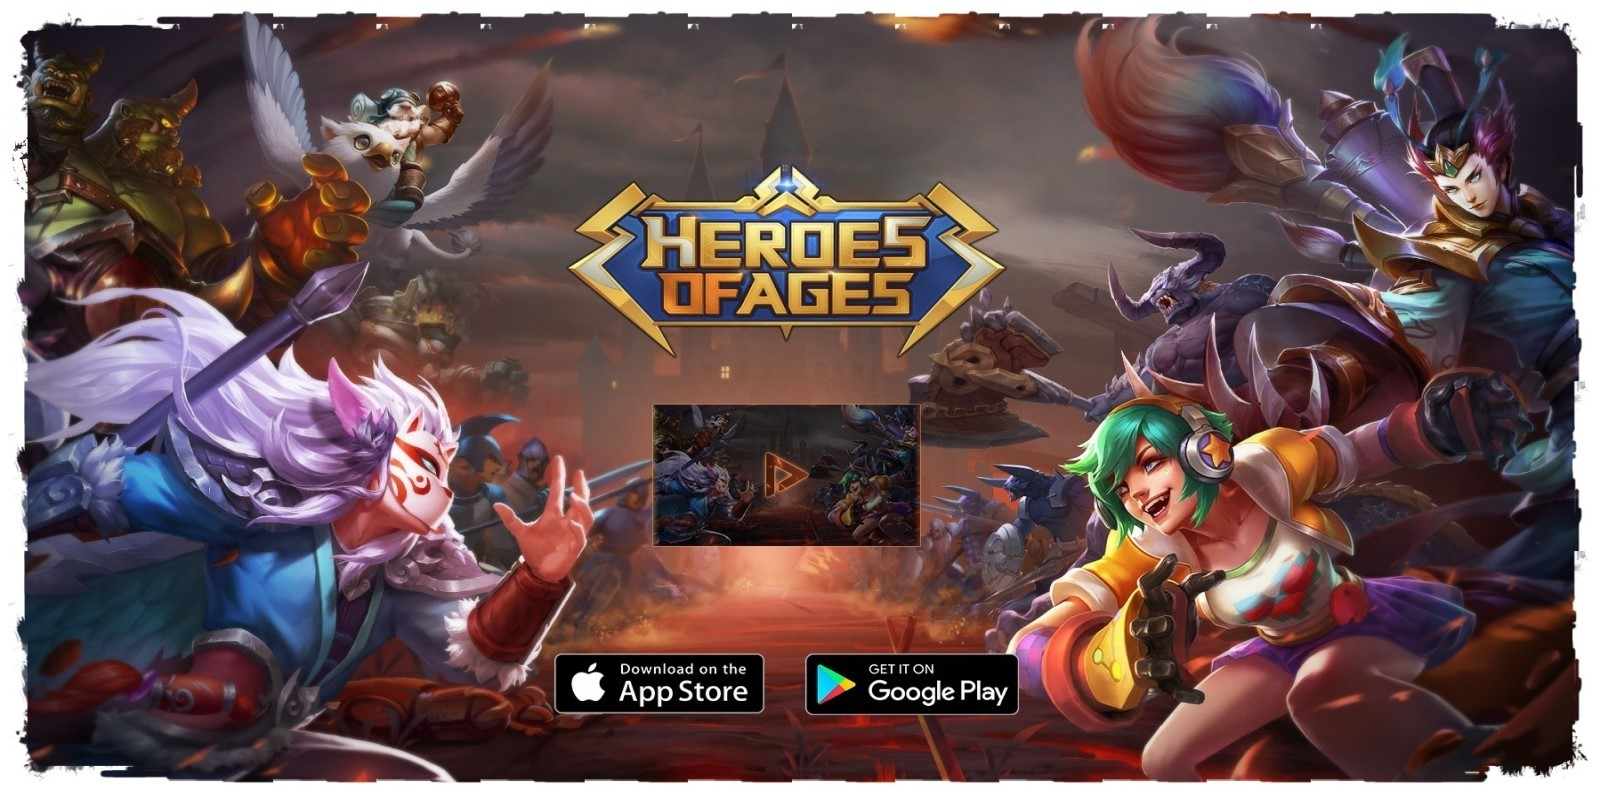 Heroes of Ages